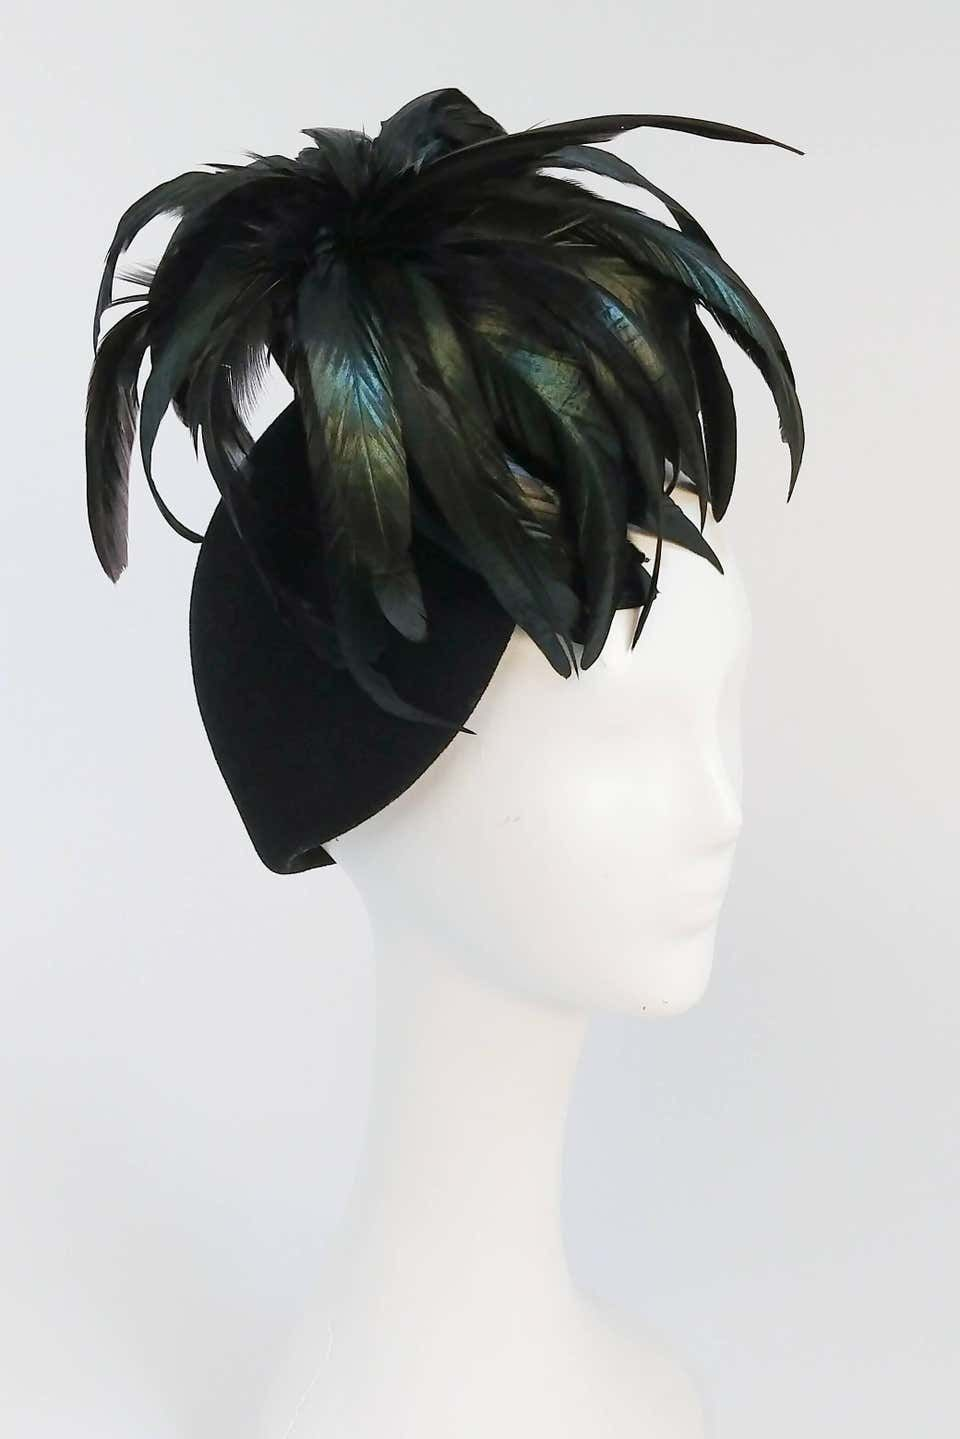 1980s Mr John Rooster Feather Hat In 2021 Feather Hat Elegant Hats Women Hats Fashion